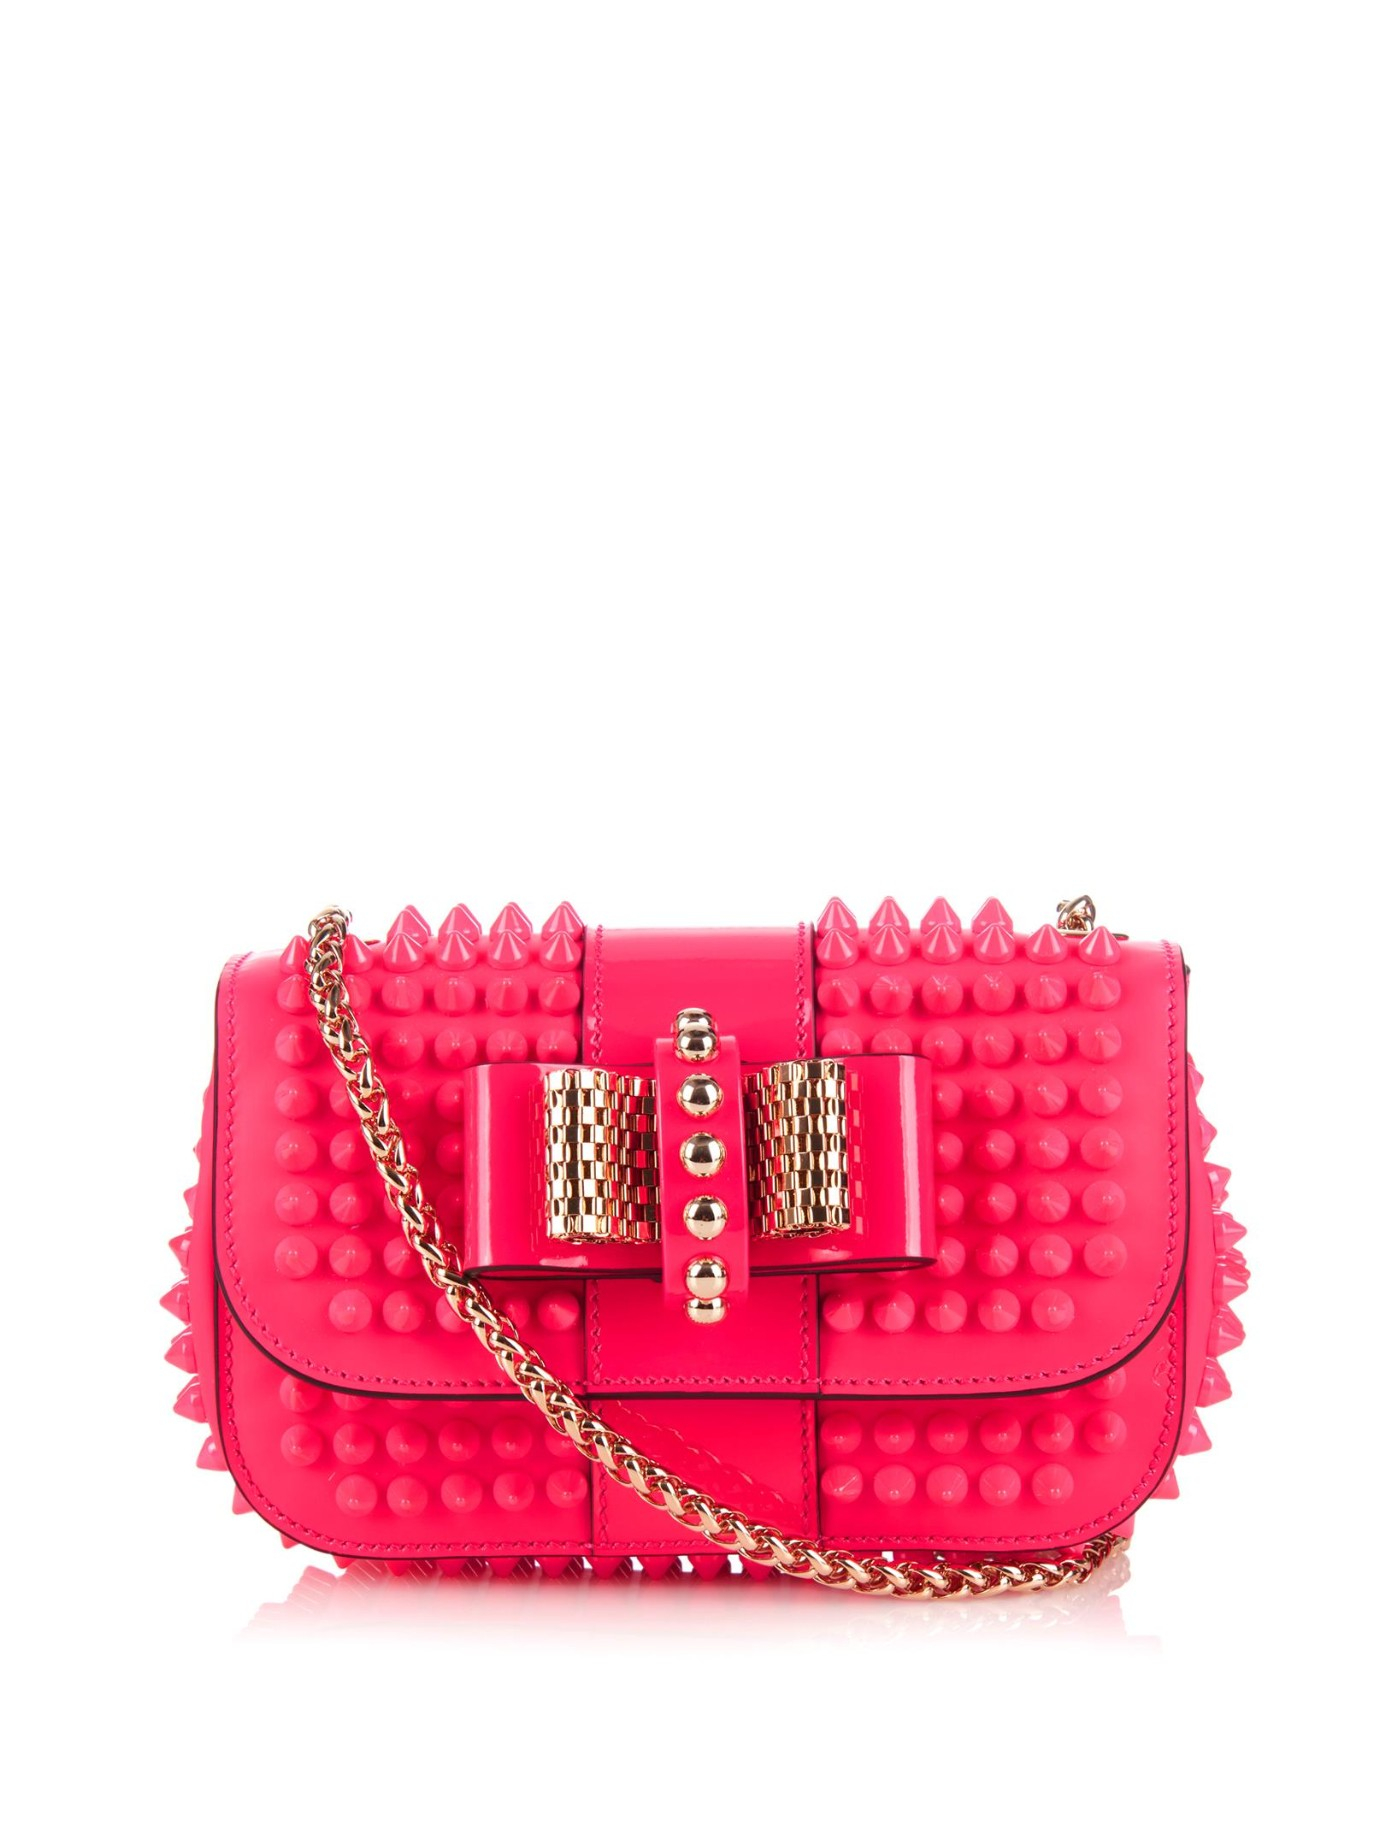 Christian Louboutin Pink Sweety Charity Mini Leather Shoulder Bag